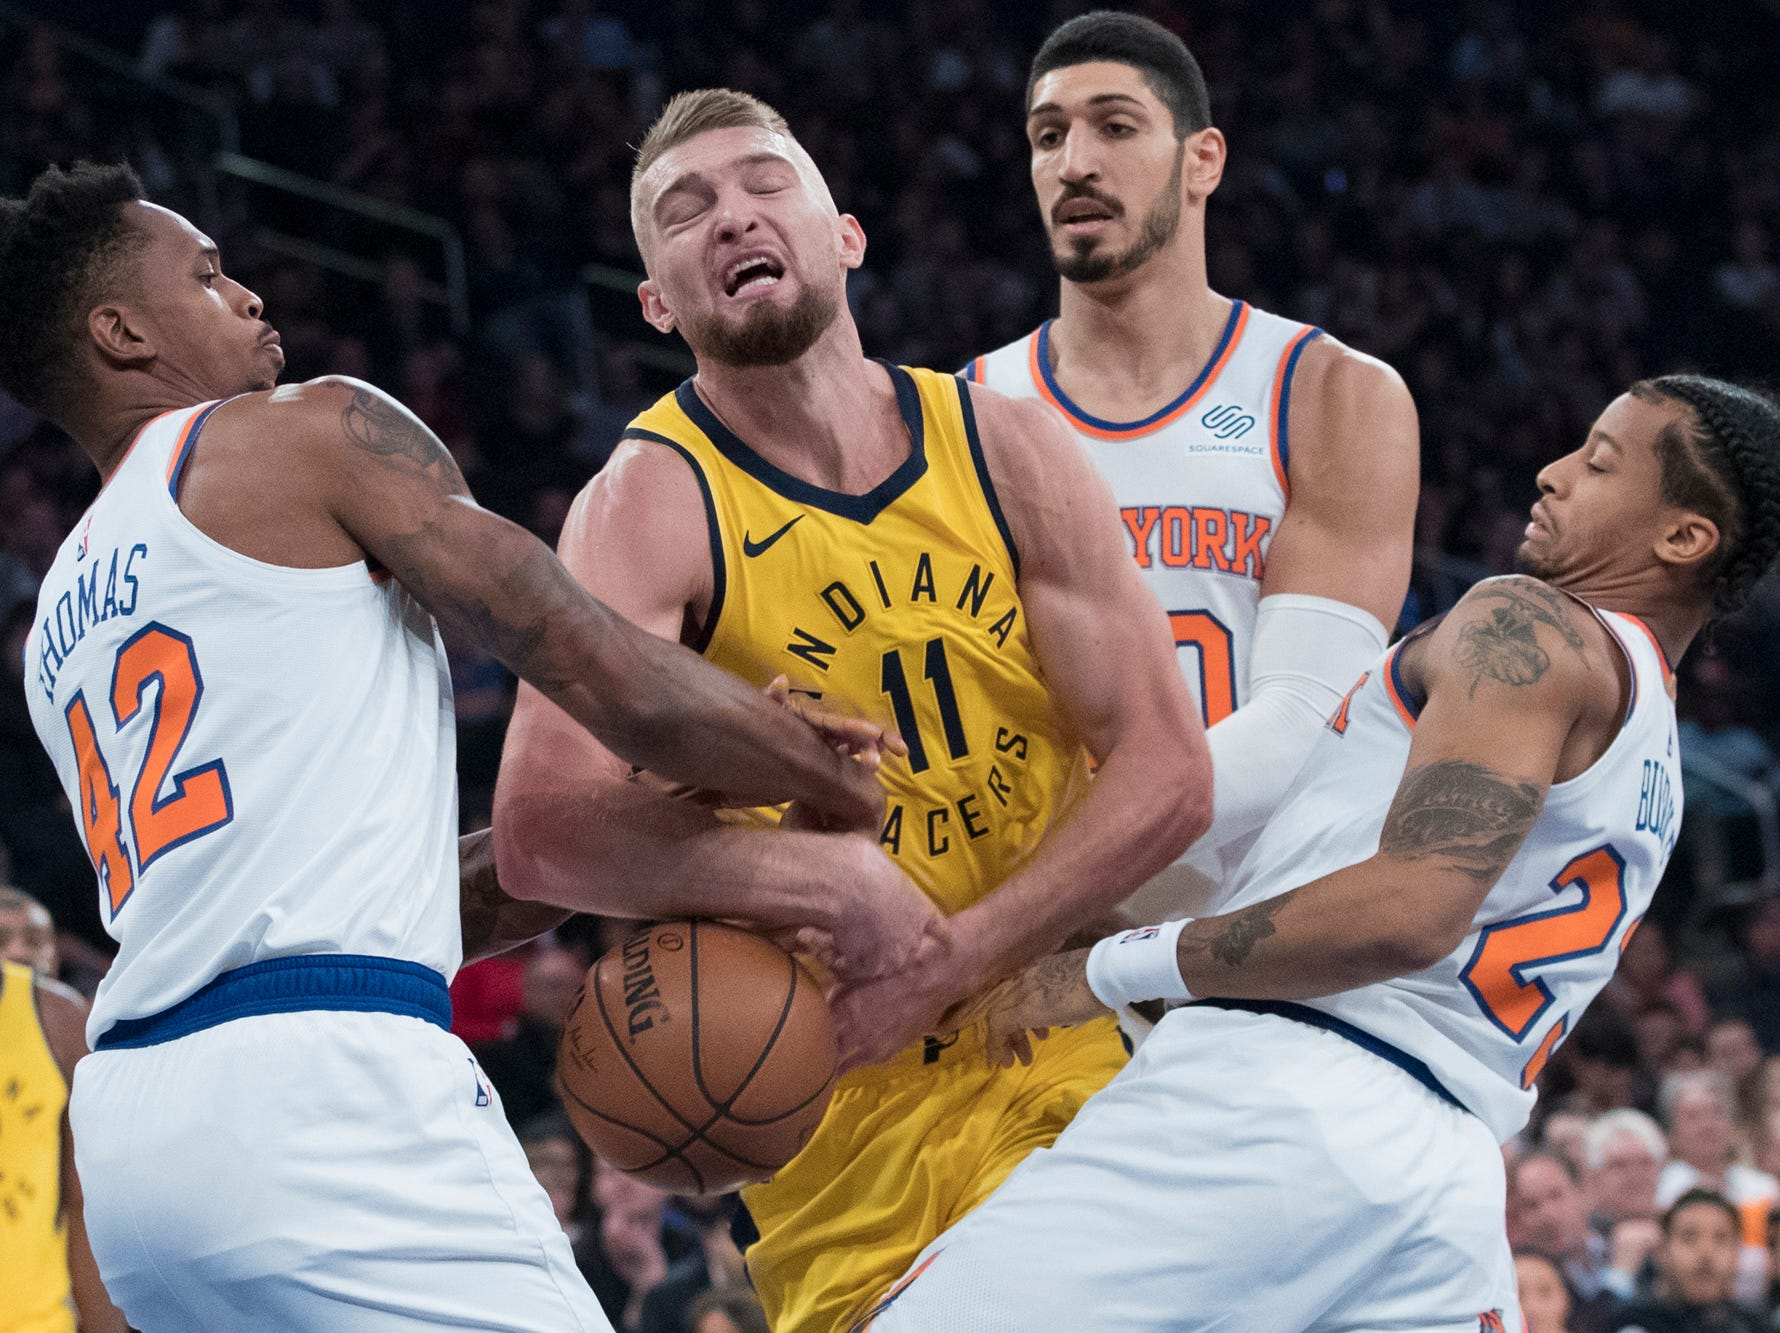 New York Knicks forward Lance Thomas (42), center Enes Kanter (00) and guard Trey Burke (23) defend against Indiana Pacers forward Domantas Sabonis (11) during the first half of an NBA basketball game Wednesday, Oct. 31, 2018, at Madison Square Garden in New York. (AP Photo/Mary Altaffer)